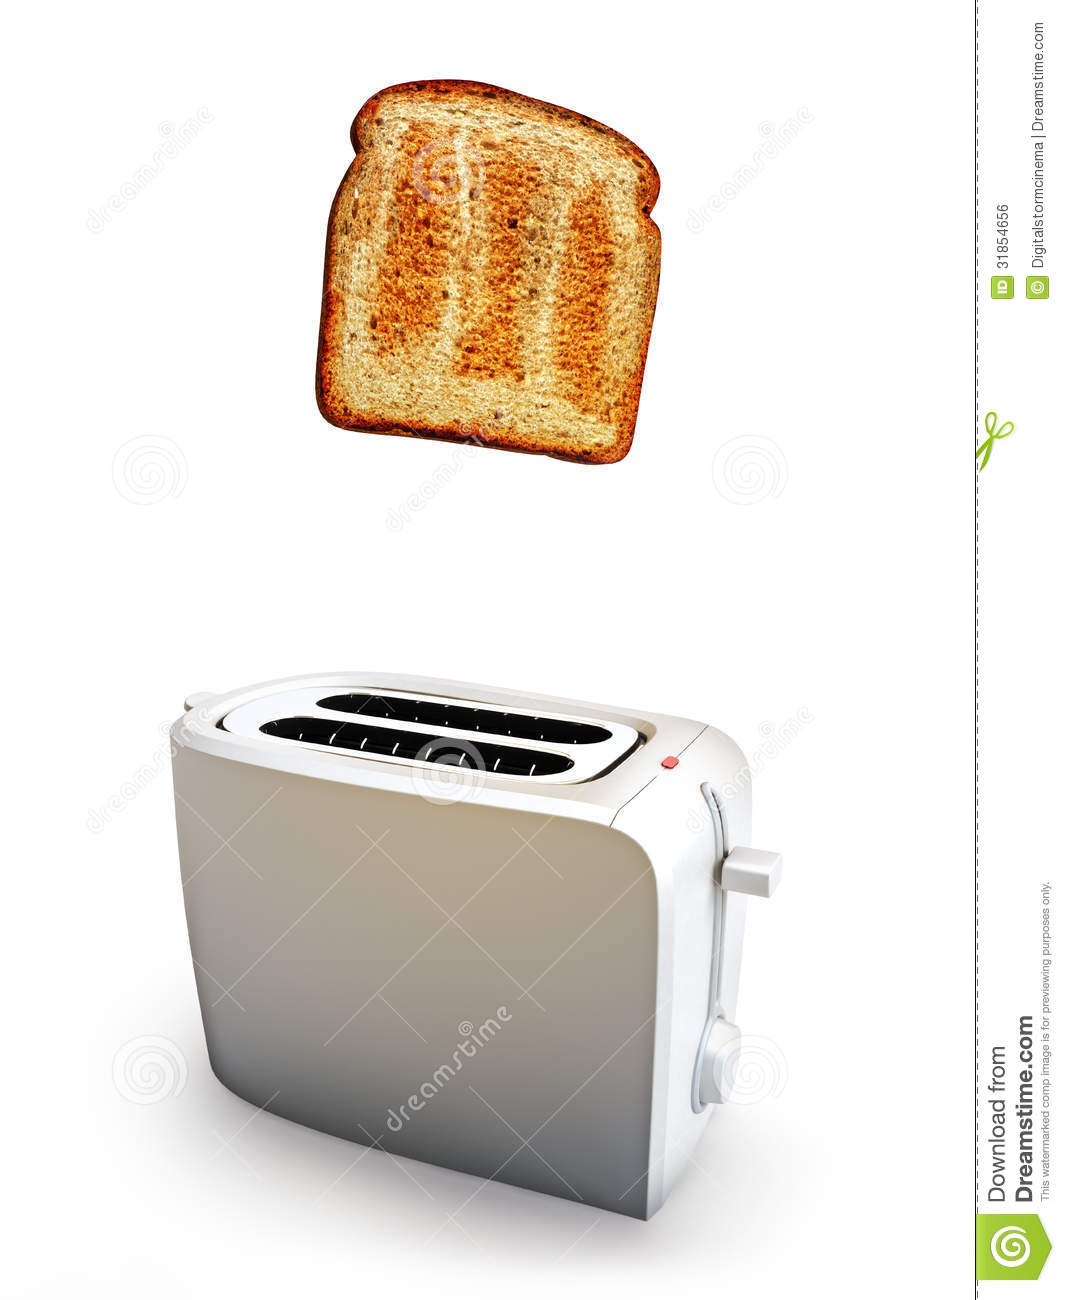 Toast popping out of a toaster  A Toaster